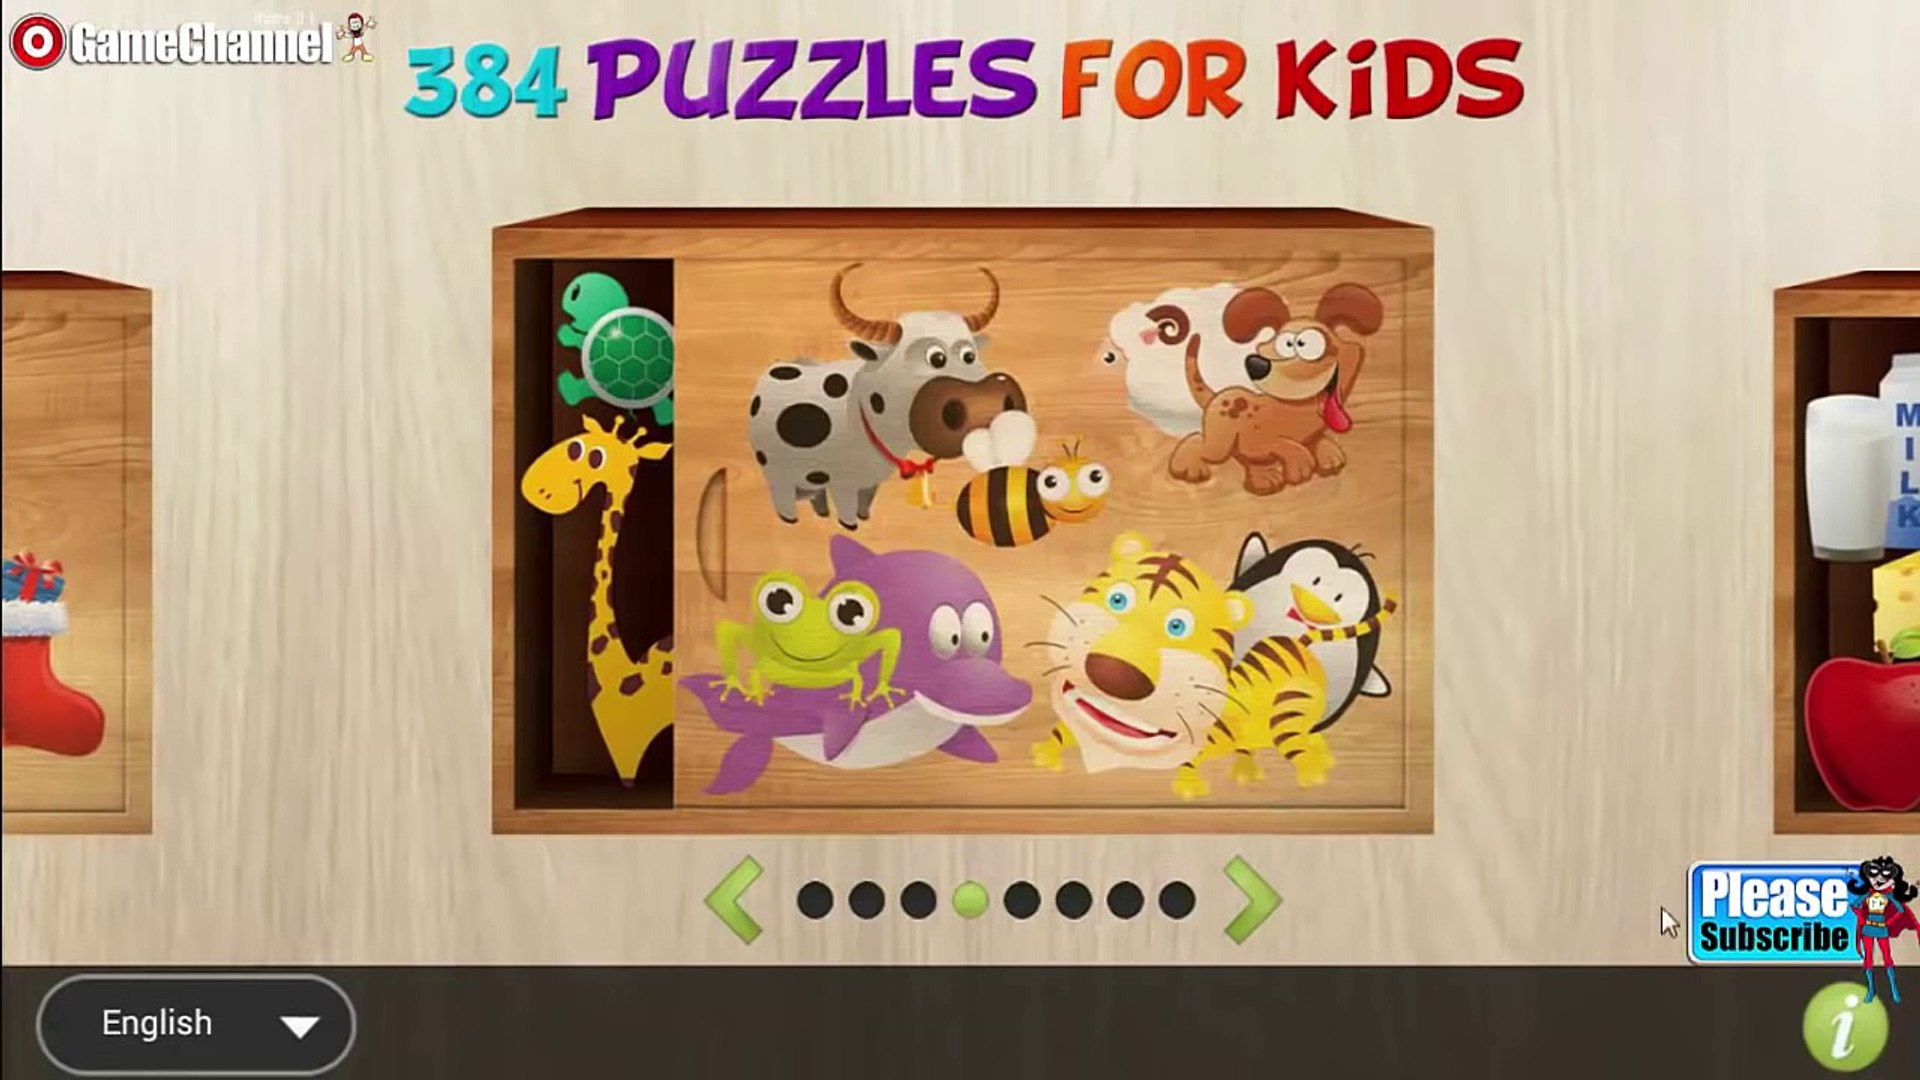 384 Puzzles for Preschool Kids 'Puzzle Education Games' Android Video